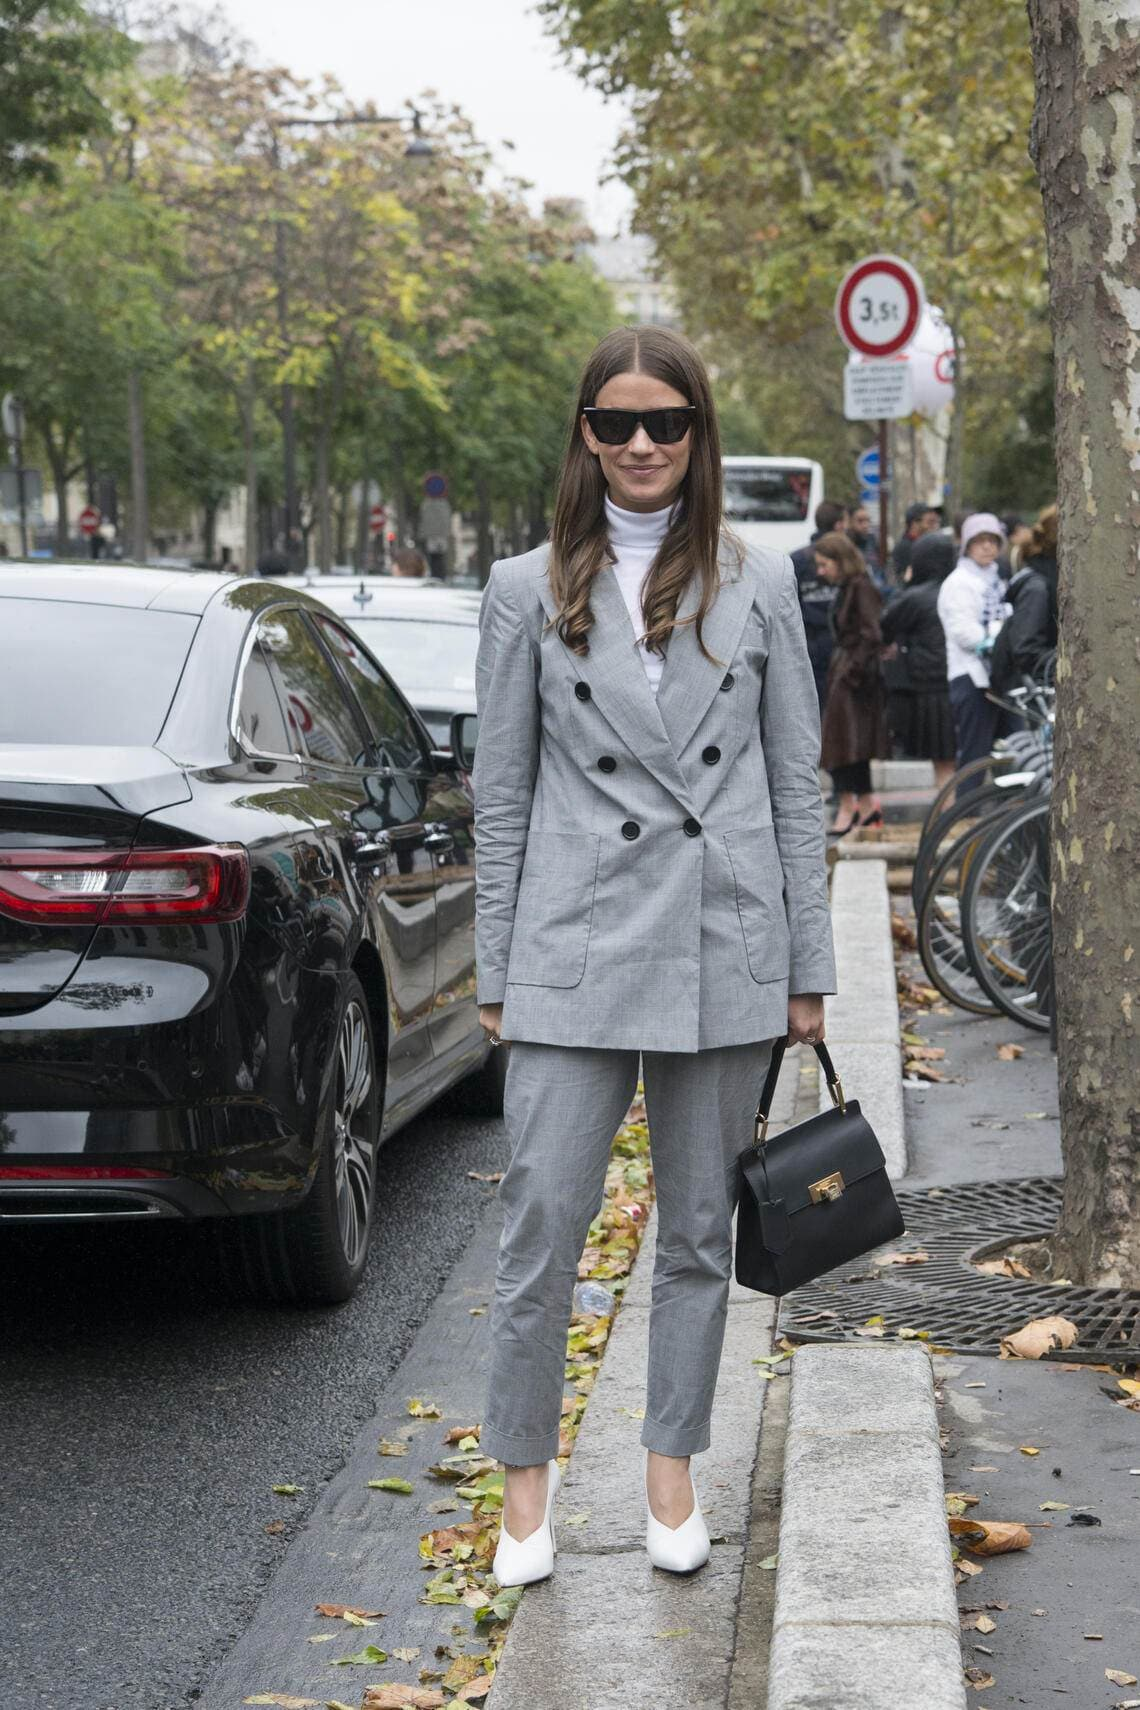 PARIS, FRANCE - OCTOBER 1 : Accessories Director at Harper's Bazaar US Amanda Alagem wears an Isabel Marant suit, Balenciaga bag, Celine sunglasses and Alexandre Birman shoes day 6 of Paris Womens Fashion Week Spring/Summer 2018, on October 1, 2017 in London, England. (Photo by Kirstin Sinclair/Getty Images)